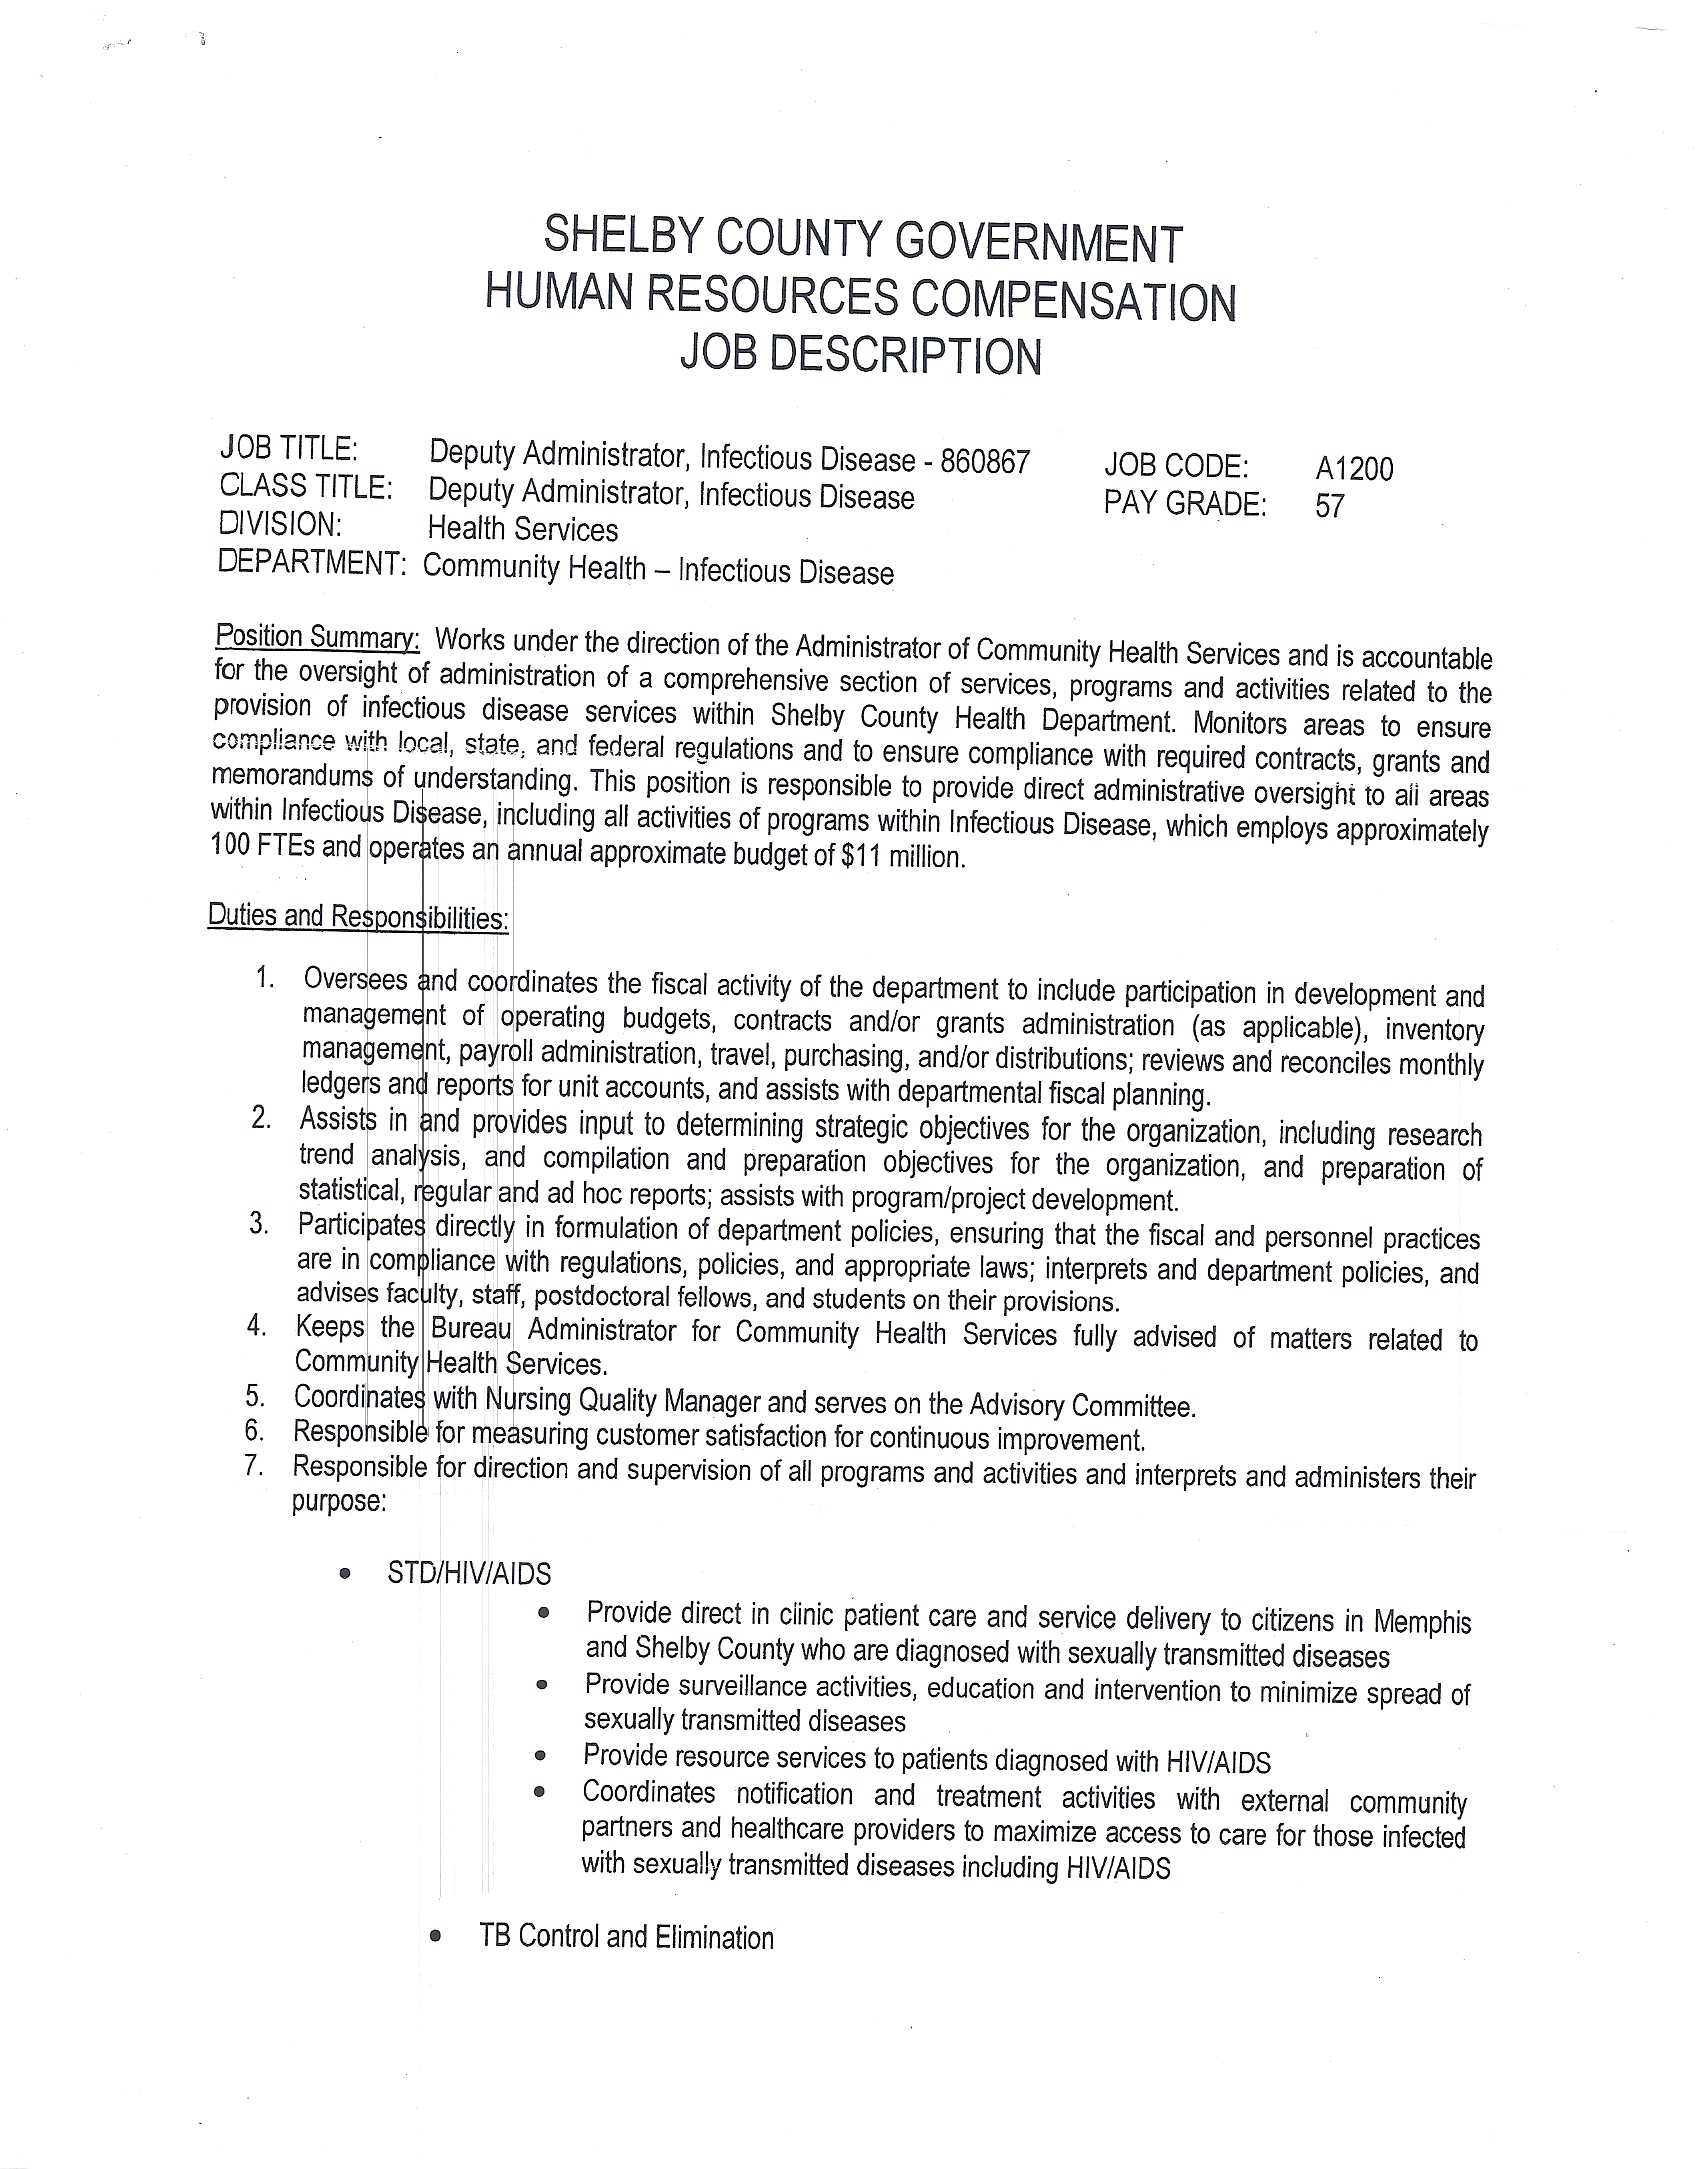 Email Resume And Cover Letter To Gregory Bethel